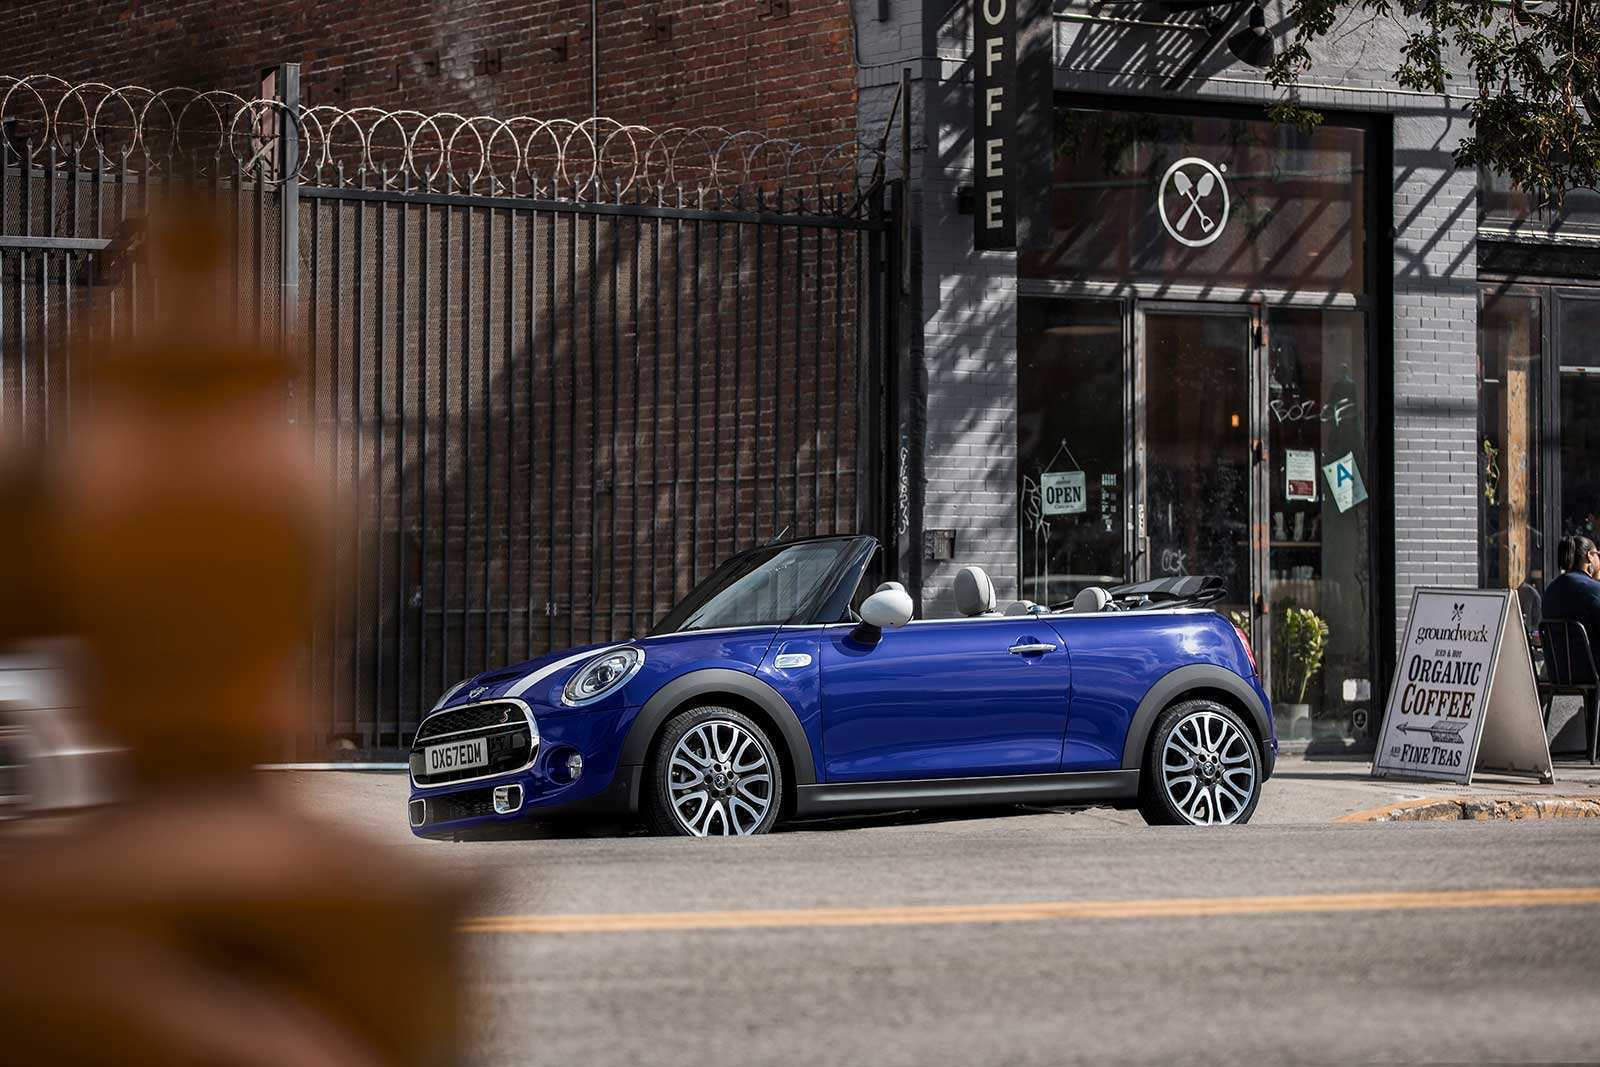 77 Gallery of 2019 Mini Usa Specs and Review with 2019 Mini Usa